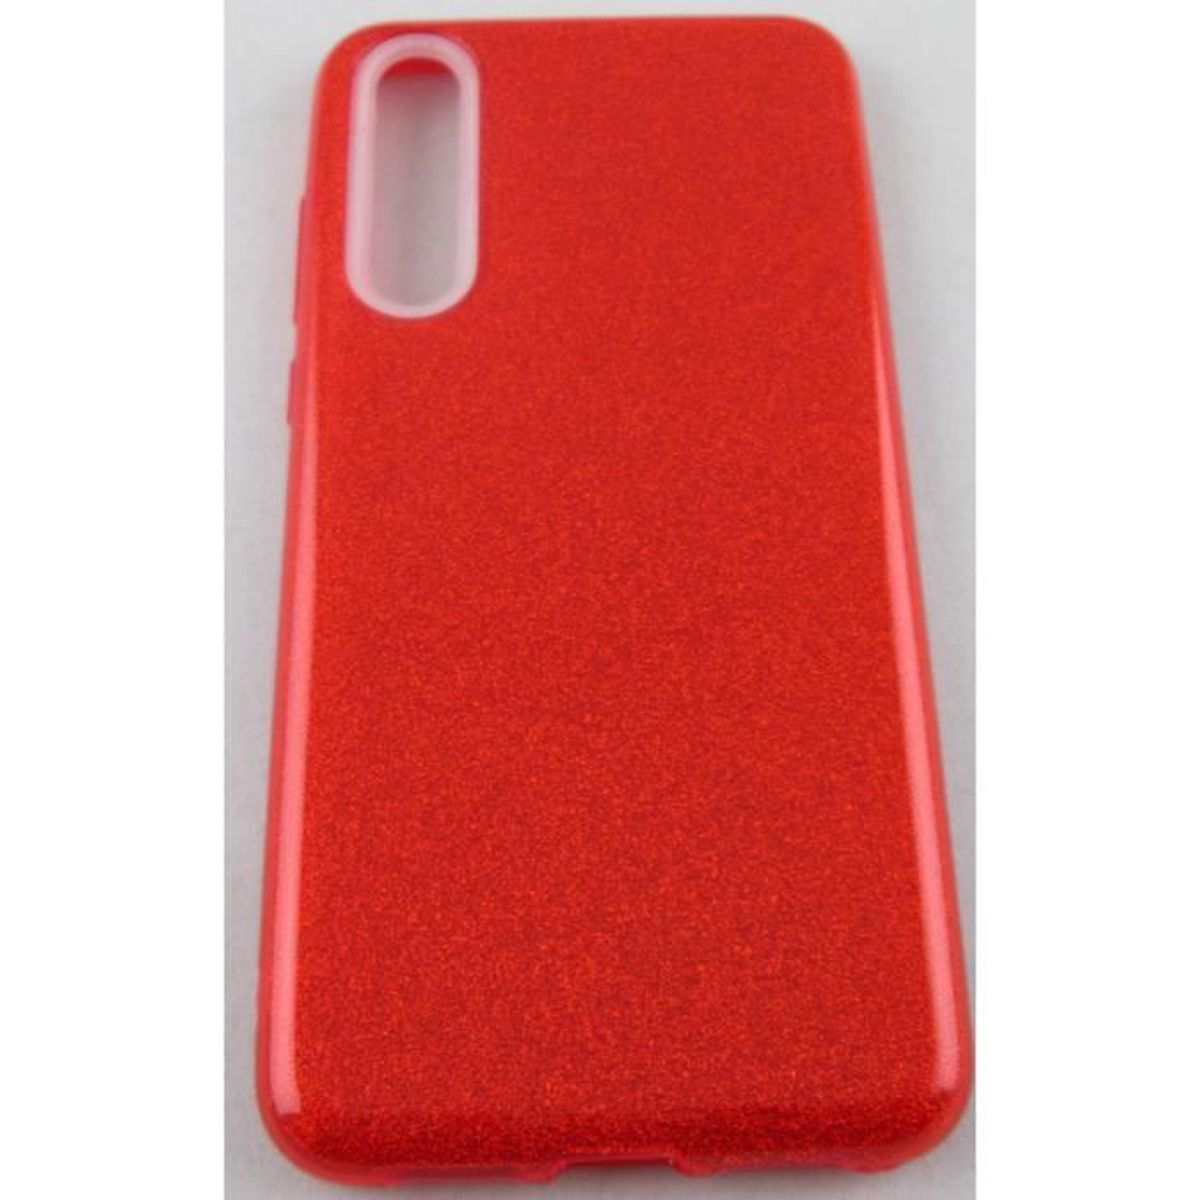 coque huawei p20 pro silicone souple rouge